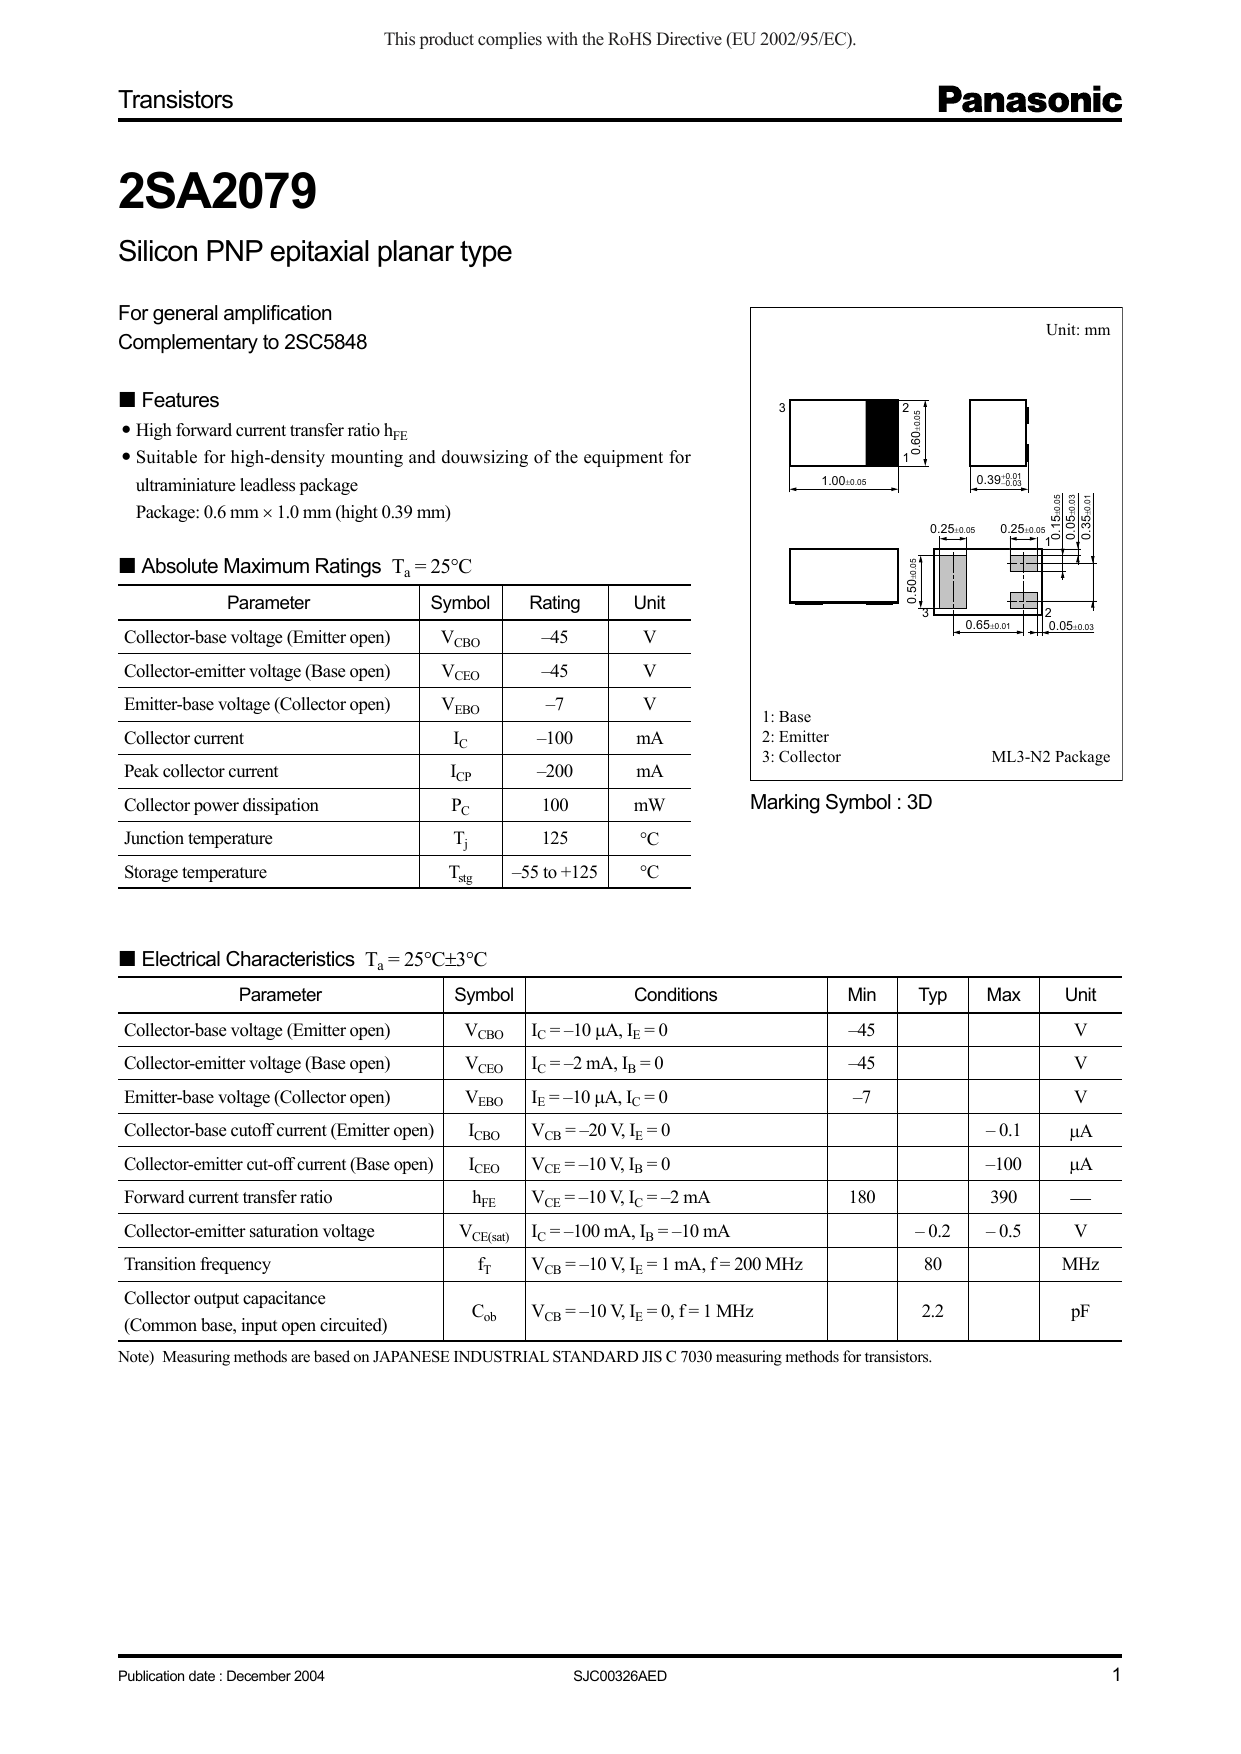 Bestseller: Panasonic 60 Manual